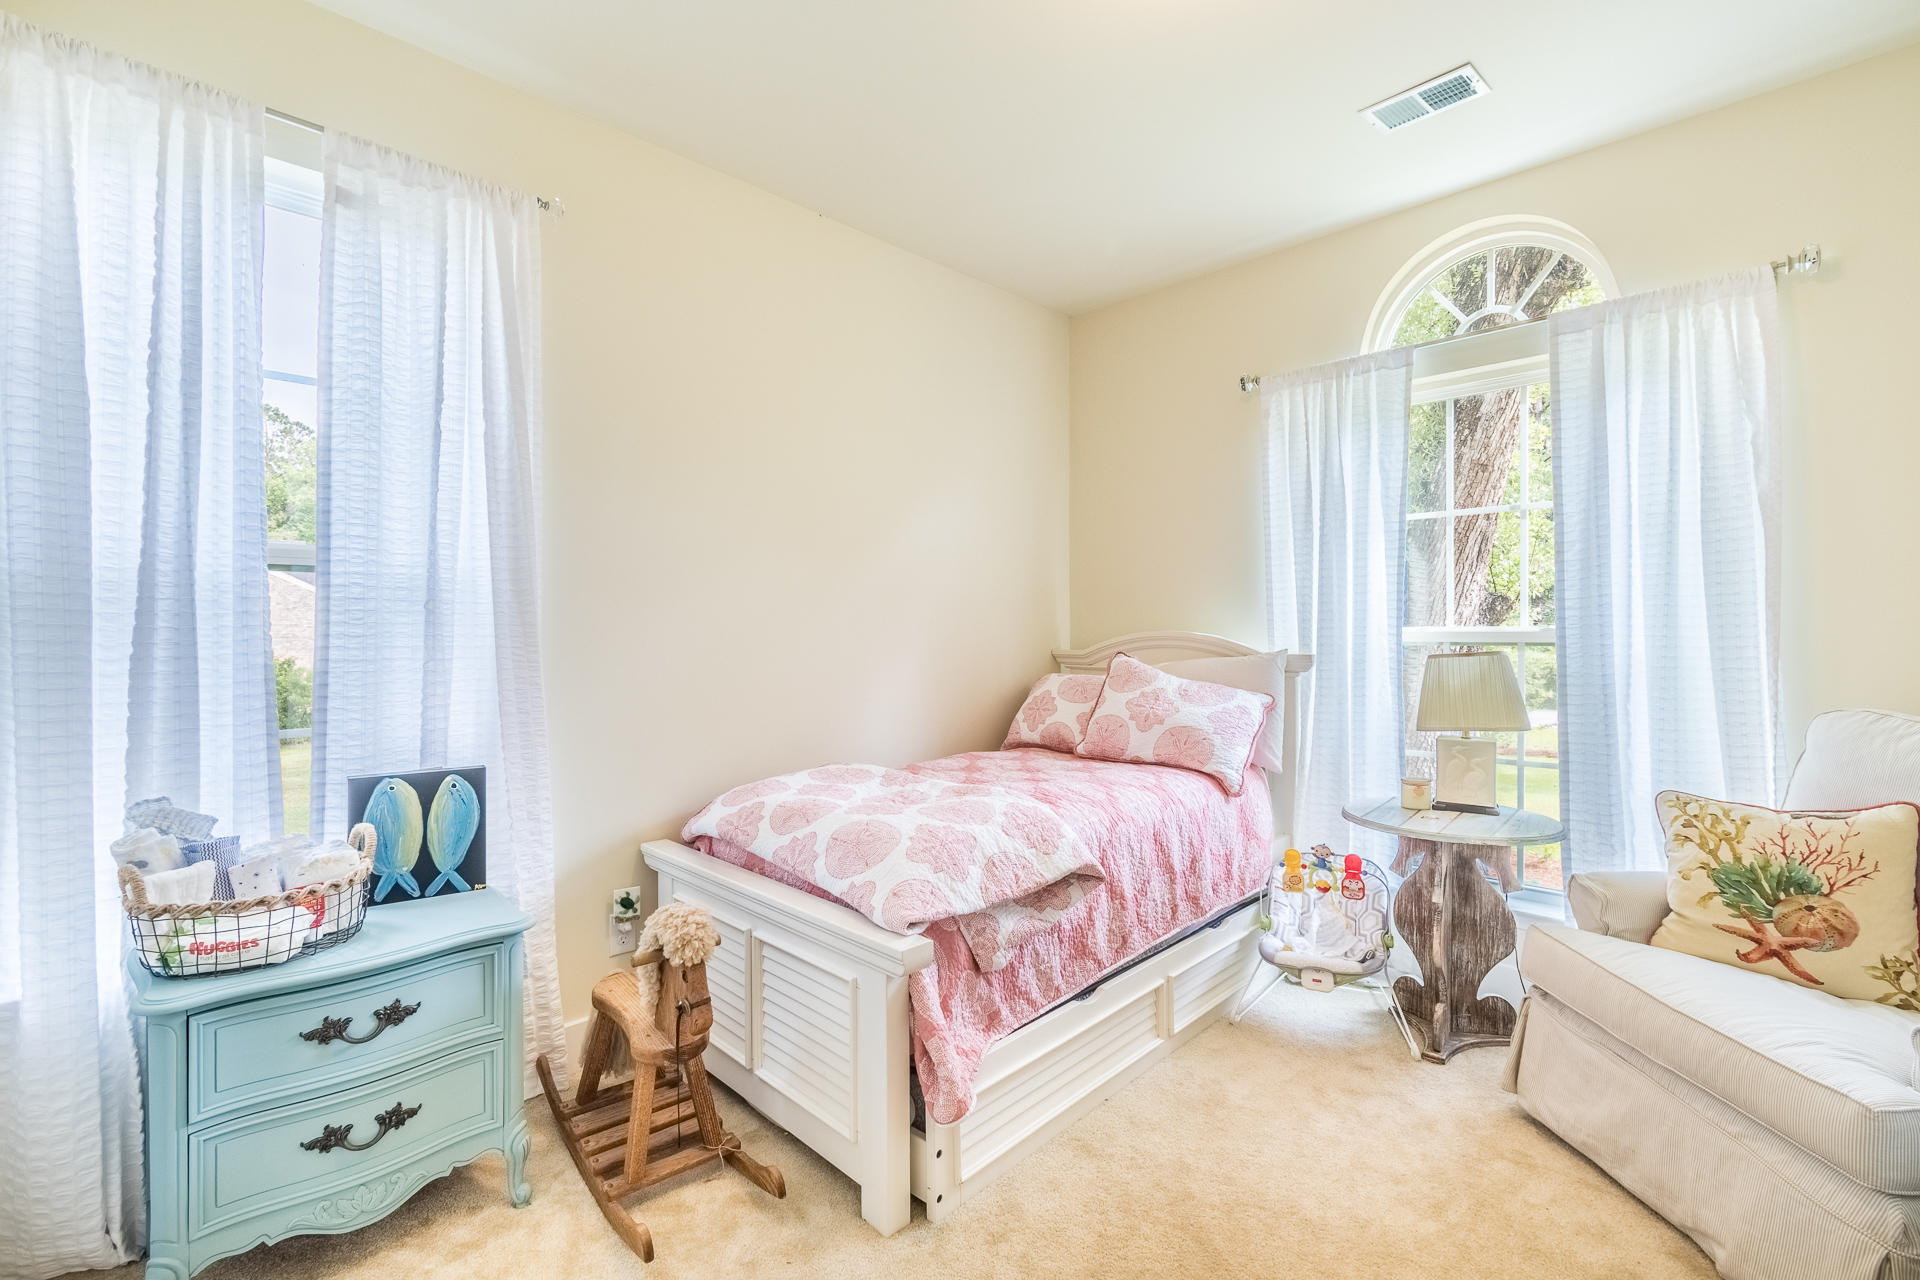 Cainhoy Landing Homes For Sale - 203 Ferry Point, Charleston, SC - 6